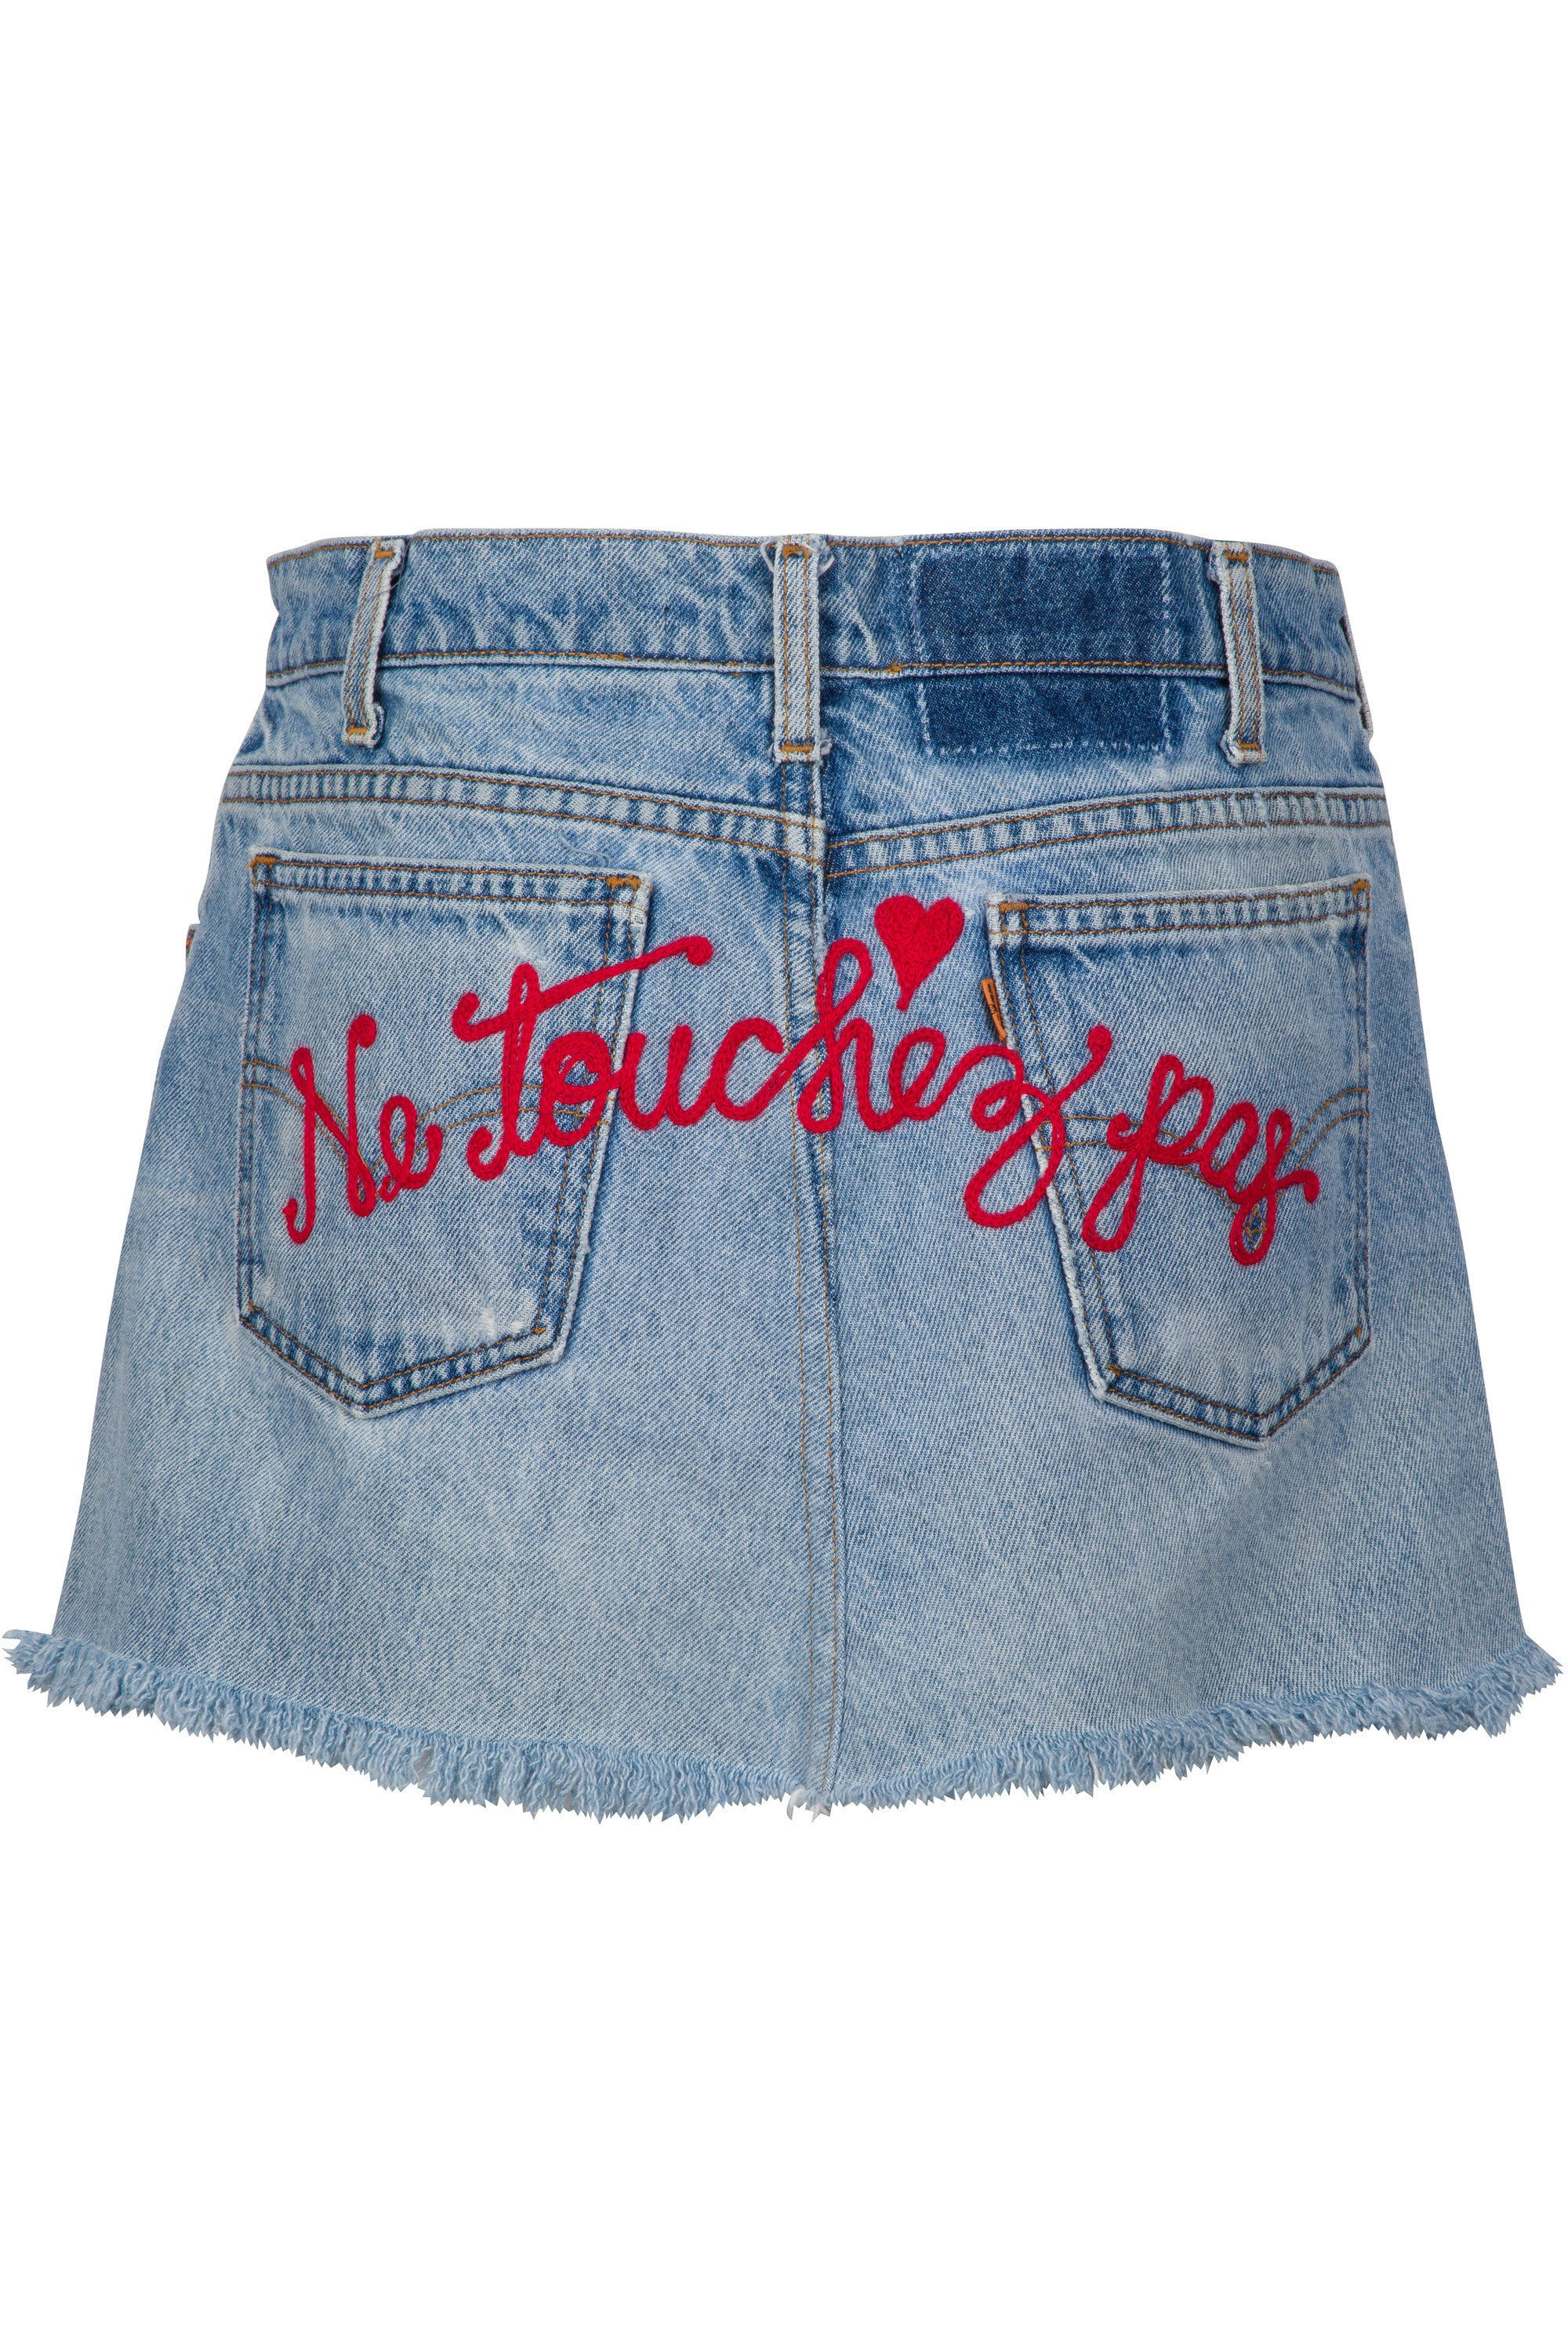 DON'T TOUCH DENIM SKIRT BOTTOMS by KENDALL + KYLIE